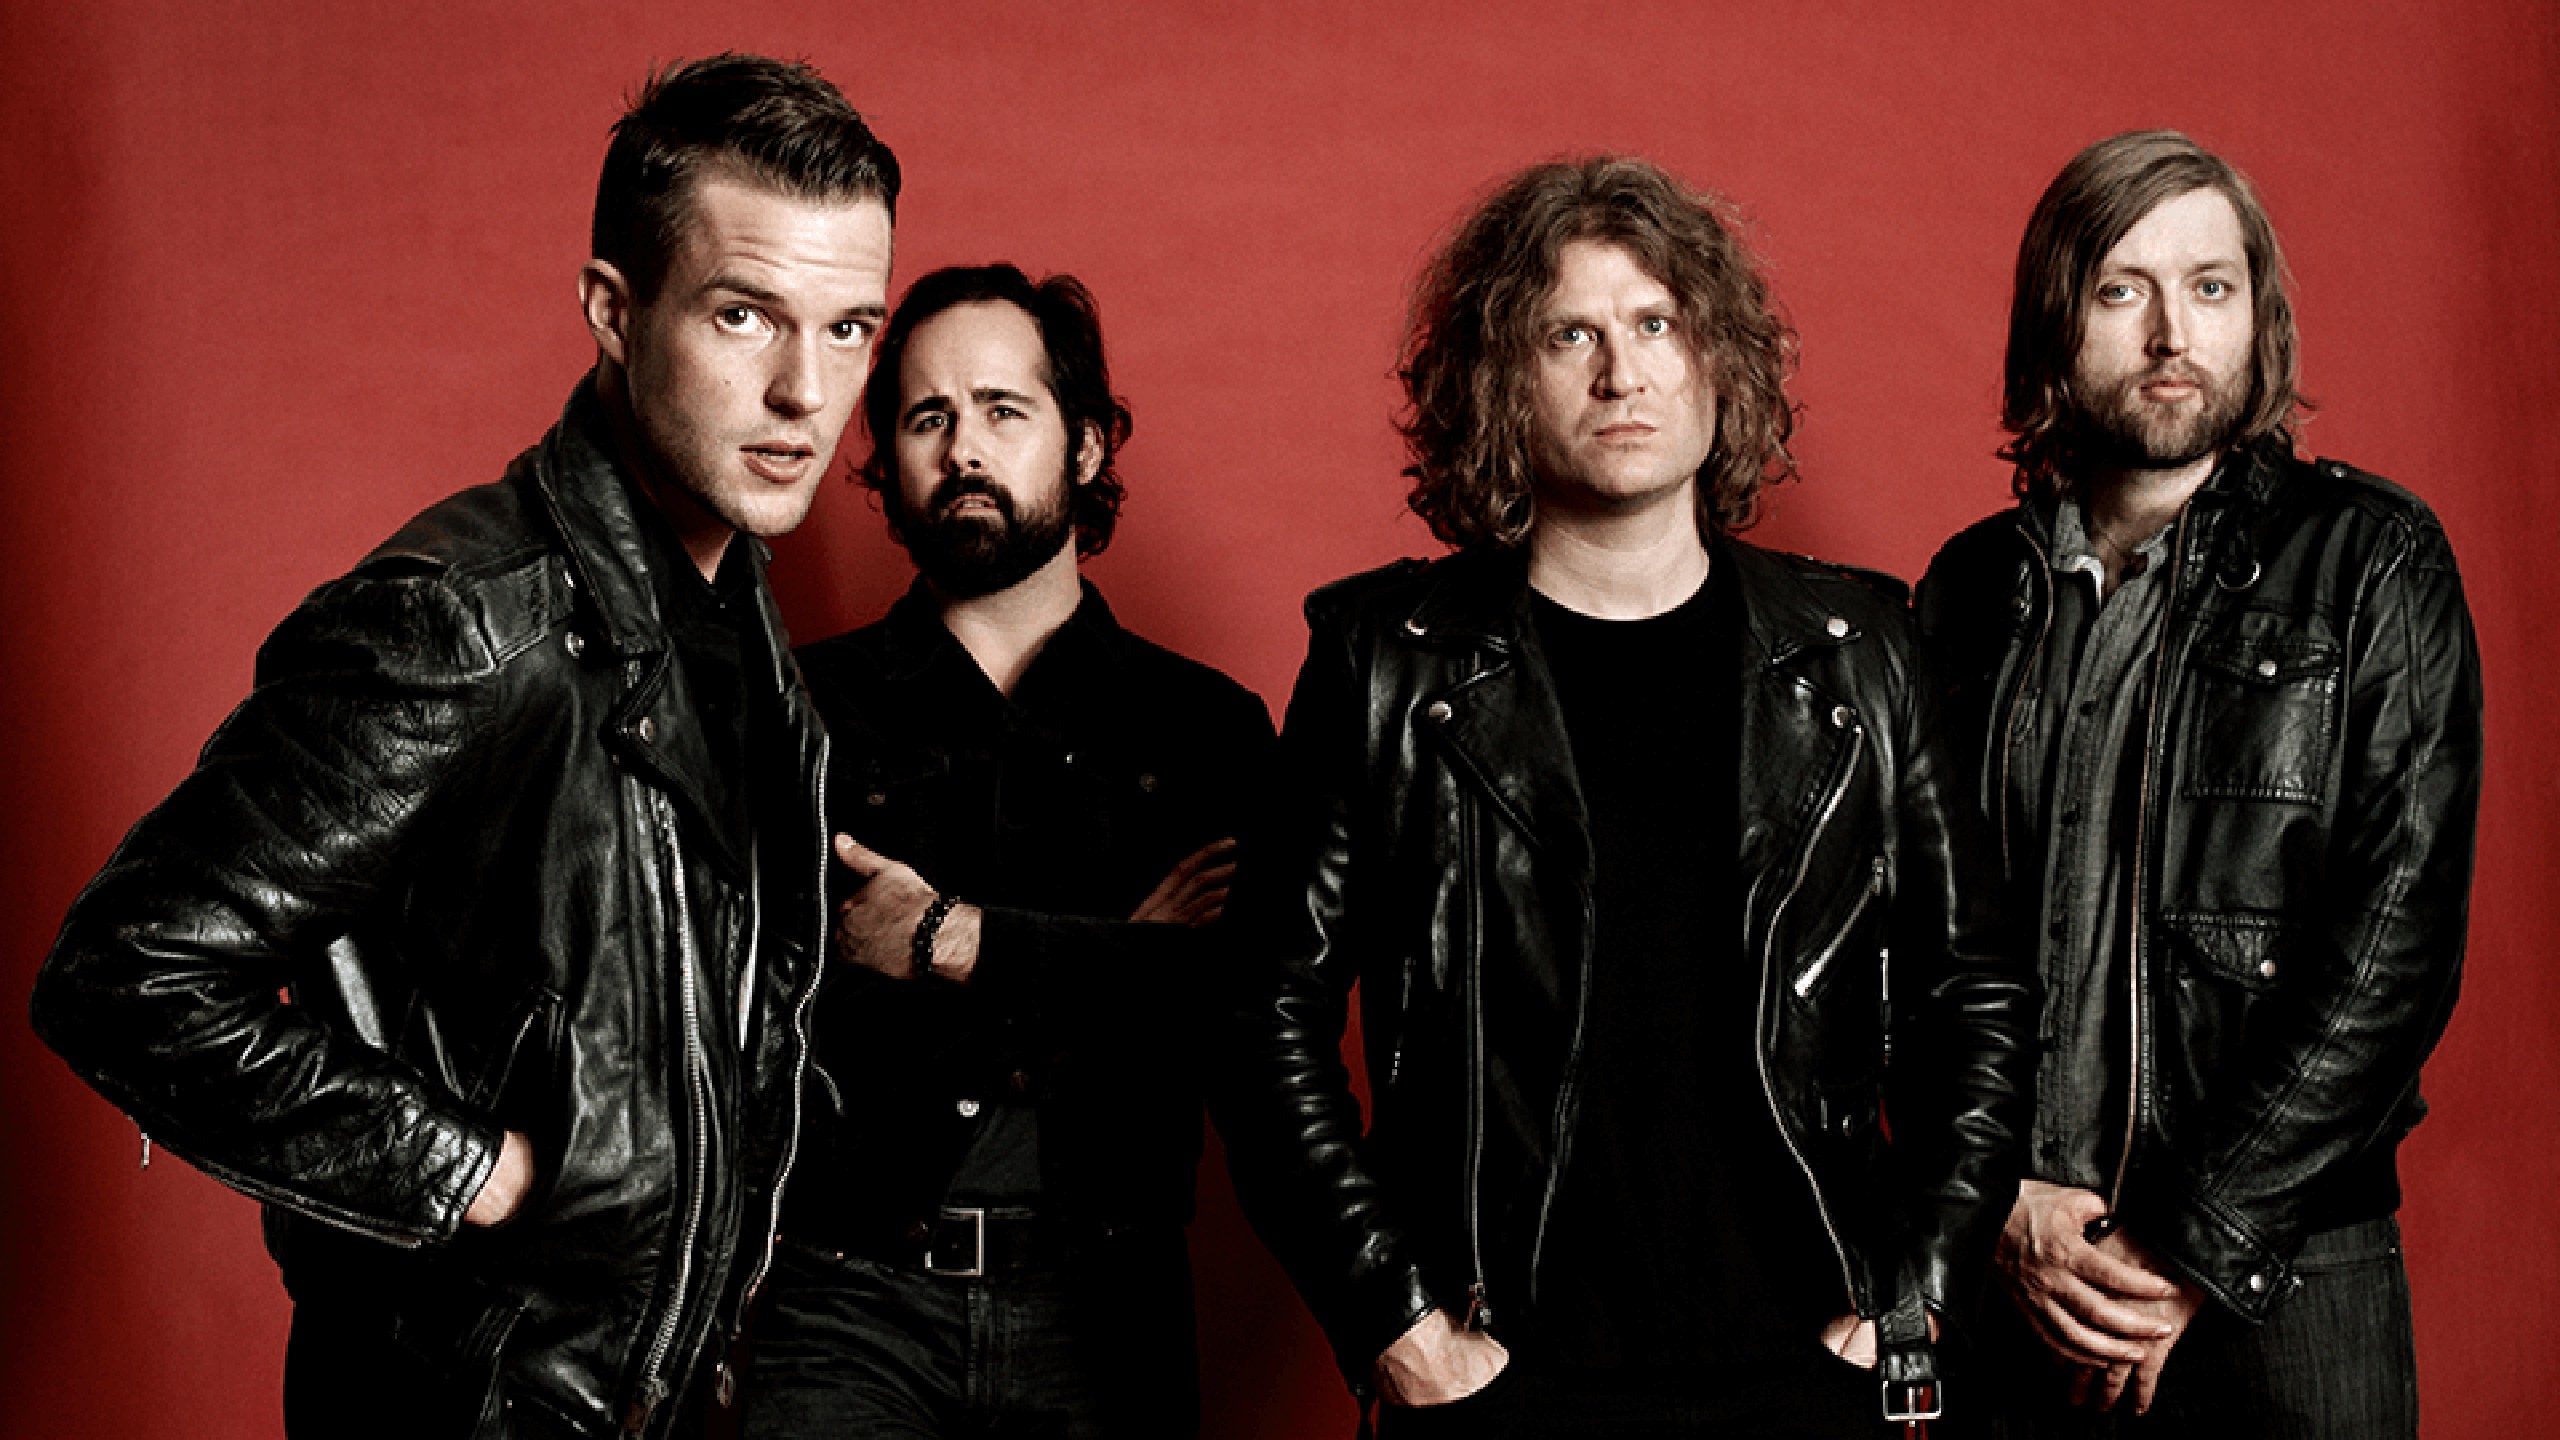 The Killers [POSTPONED] at Moda Center